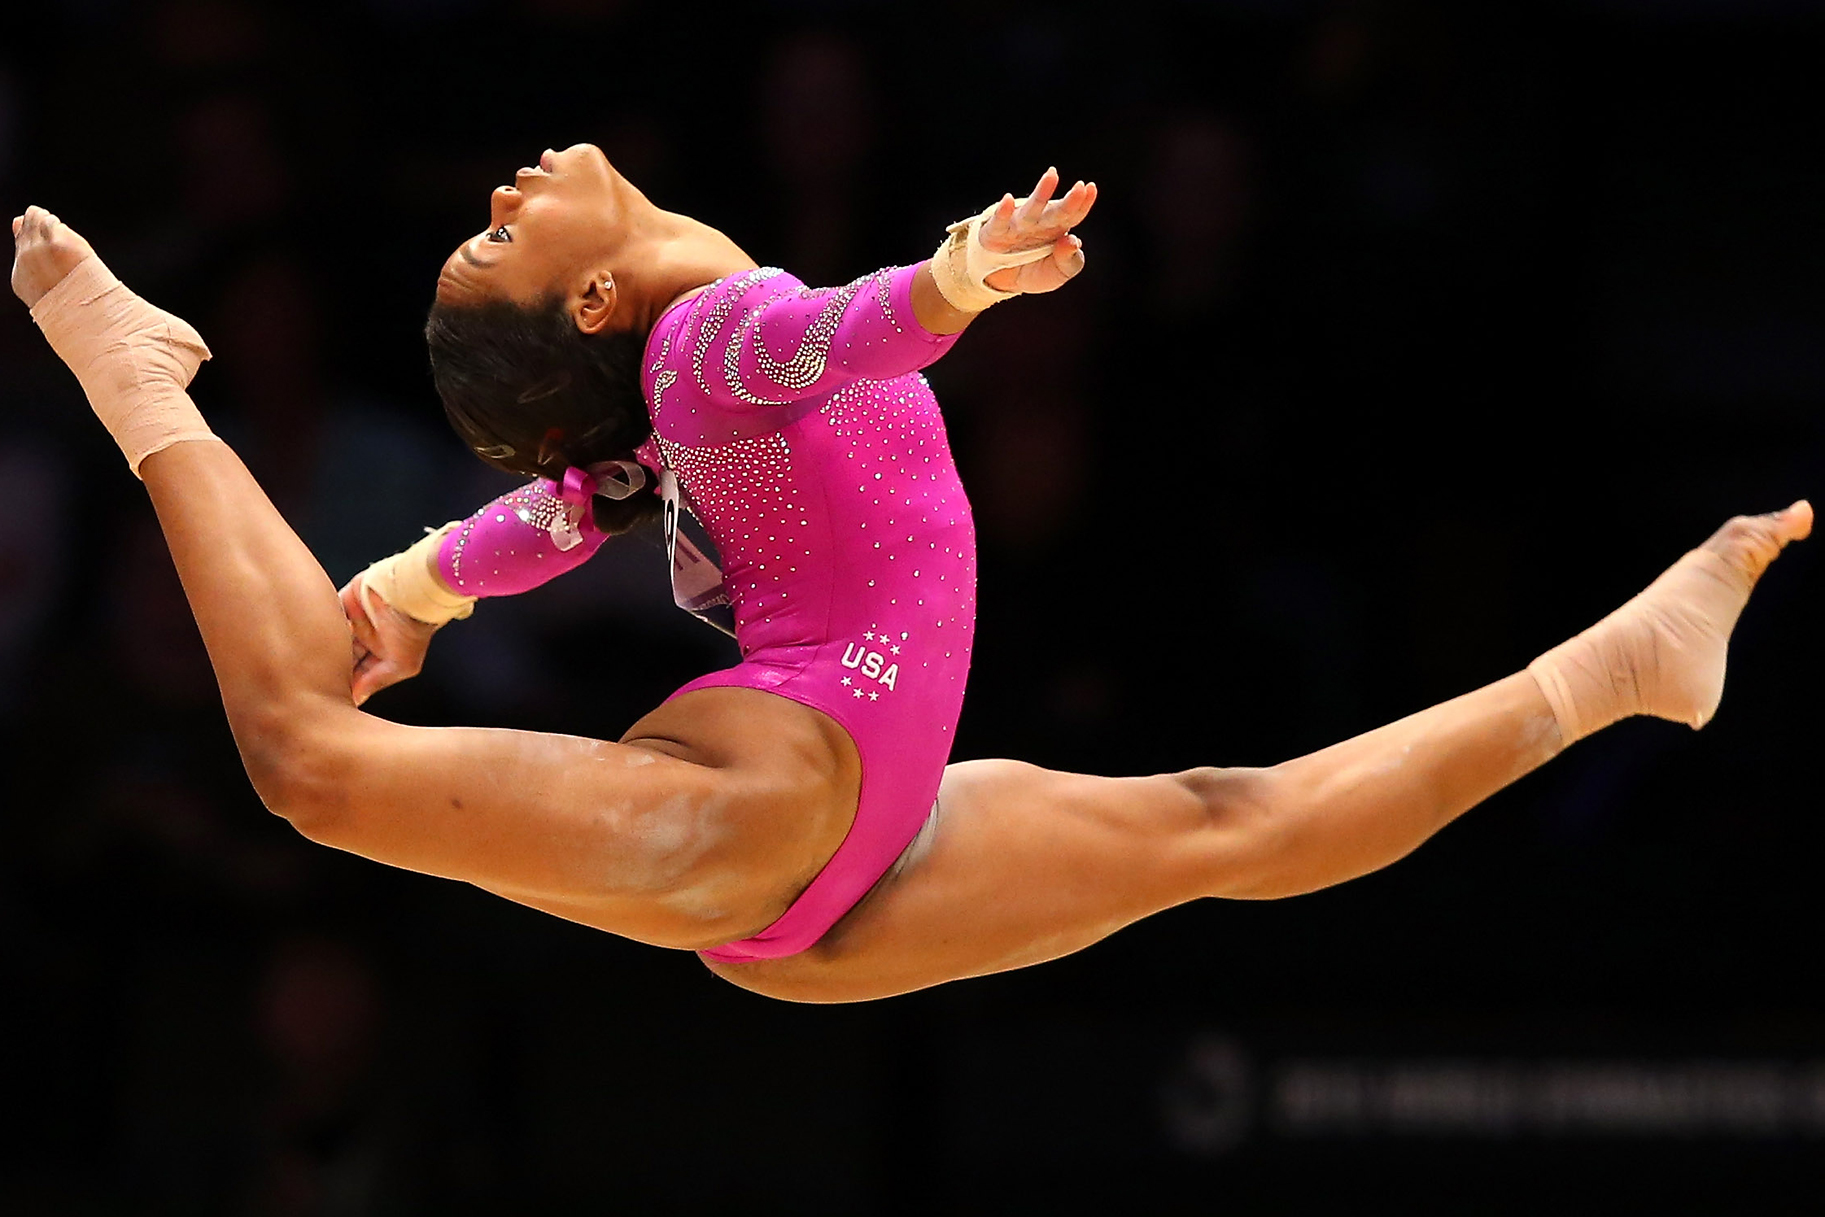 gabby douglas hasnt been to the gym since november but